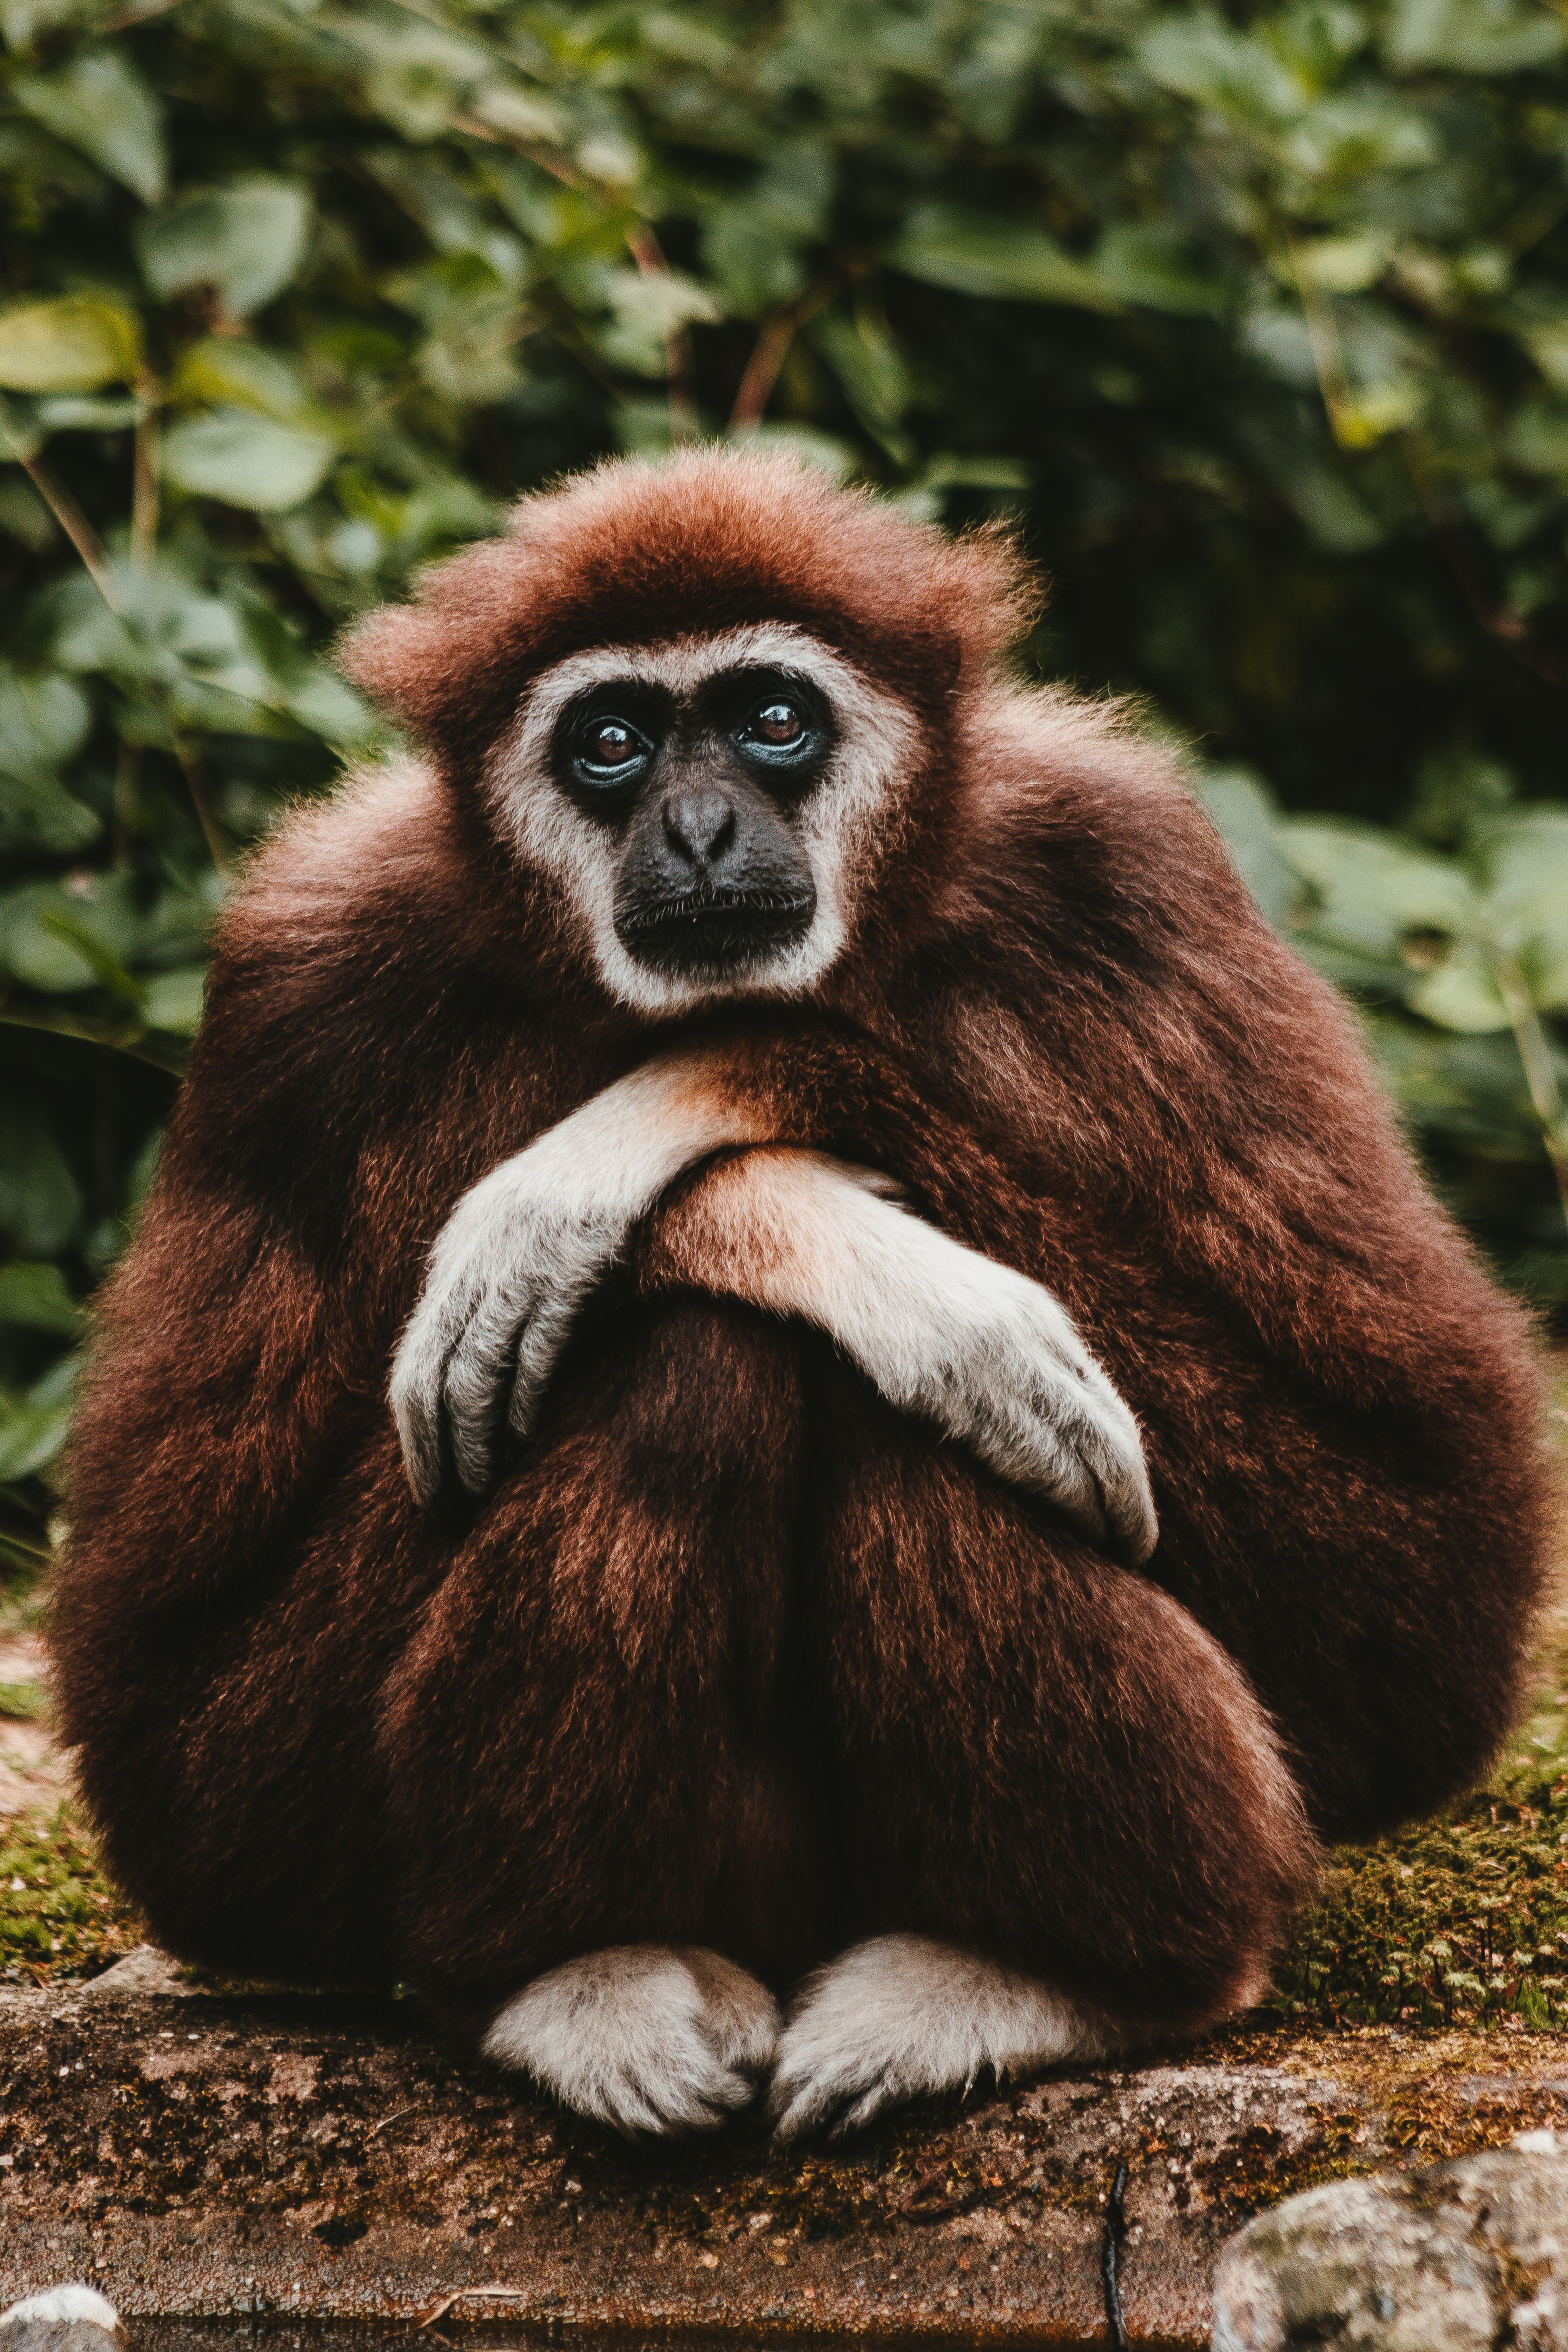 88774 download wallpaper Animals, Gibbon, Pensive, Is Sitting, Sits, Nice, Sweetheart screensavers and pictures for free